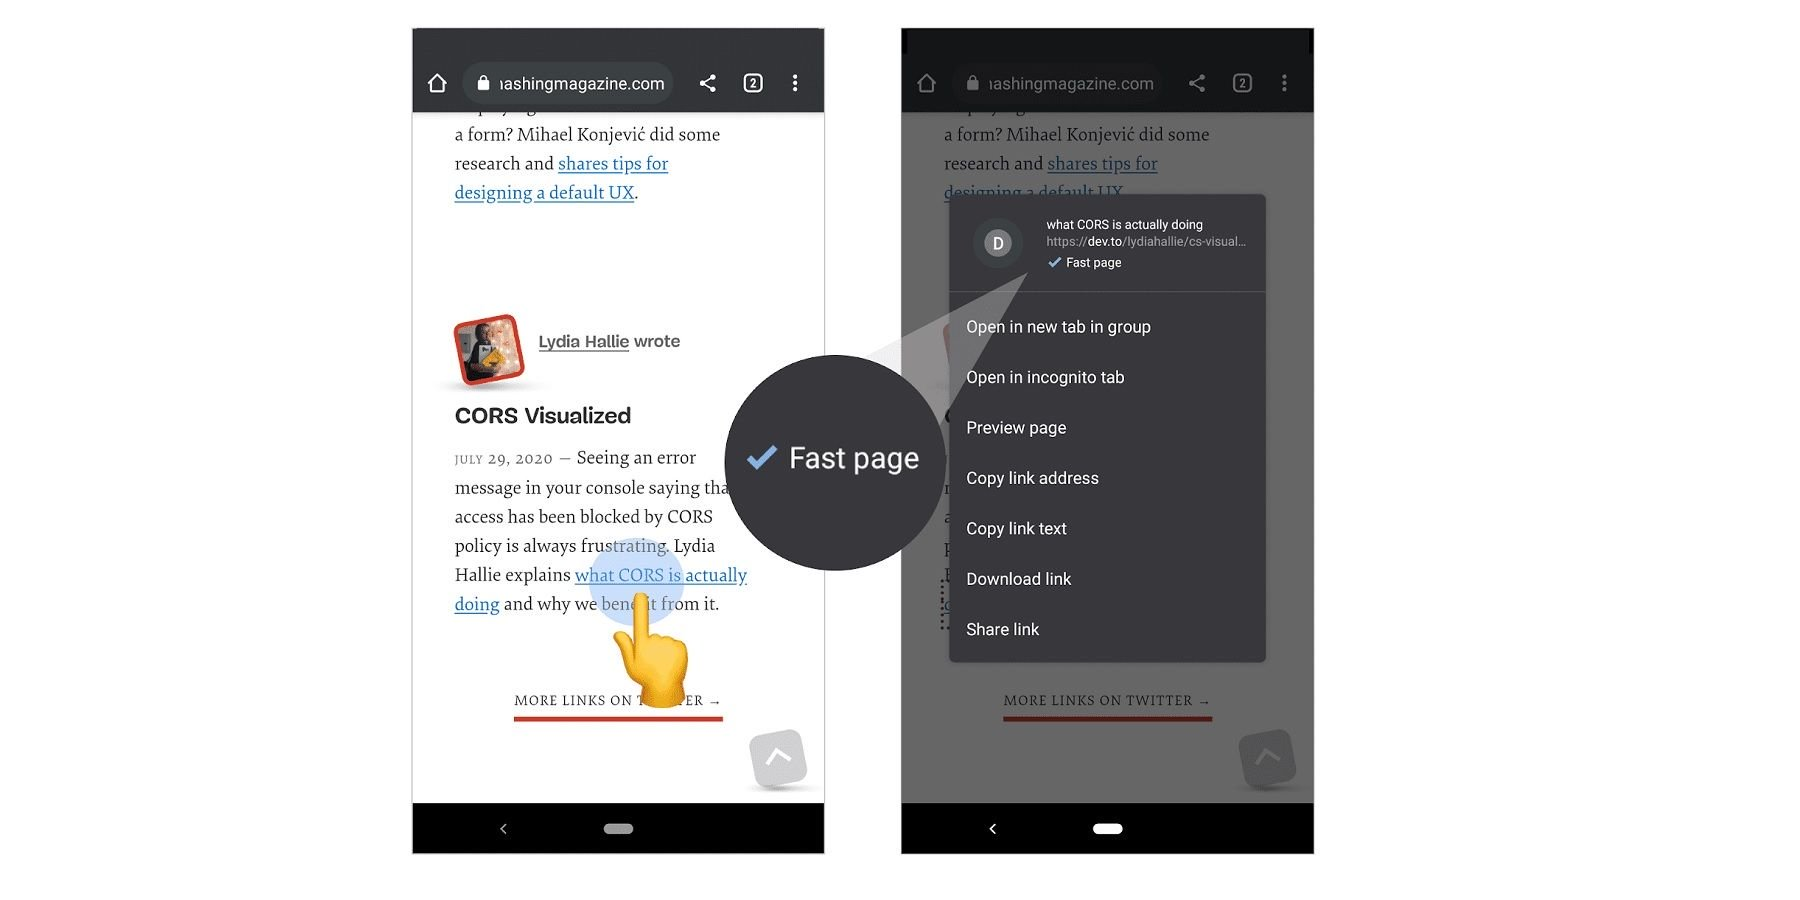 Chrome Now Shows A 'Fast Page' Label On Android: What You Need To Know - Screen Rant